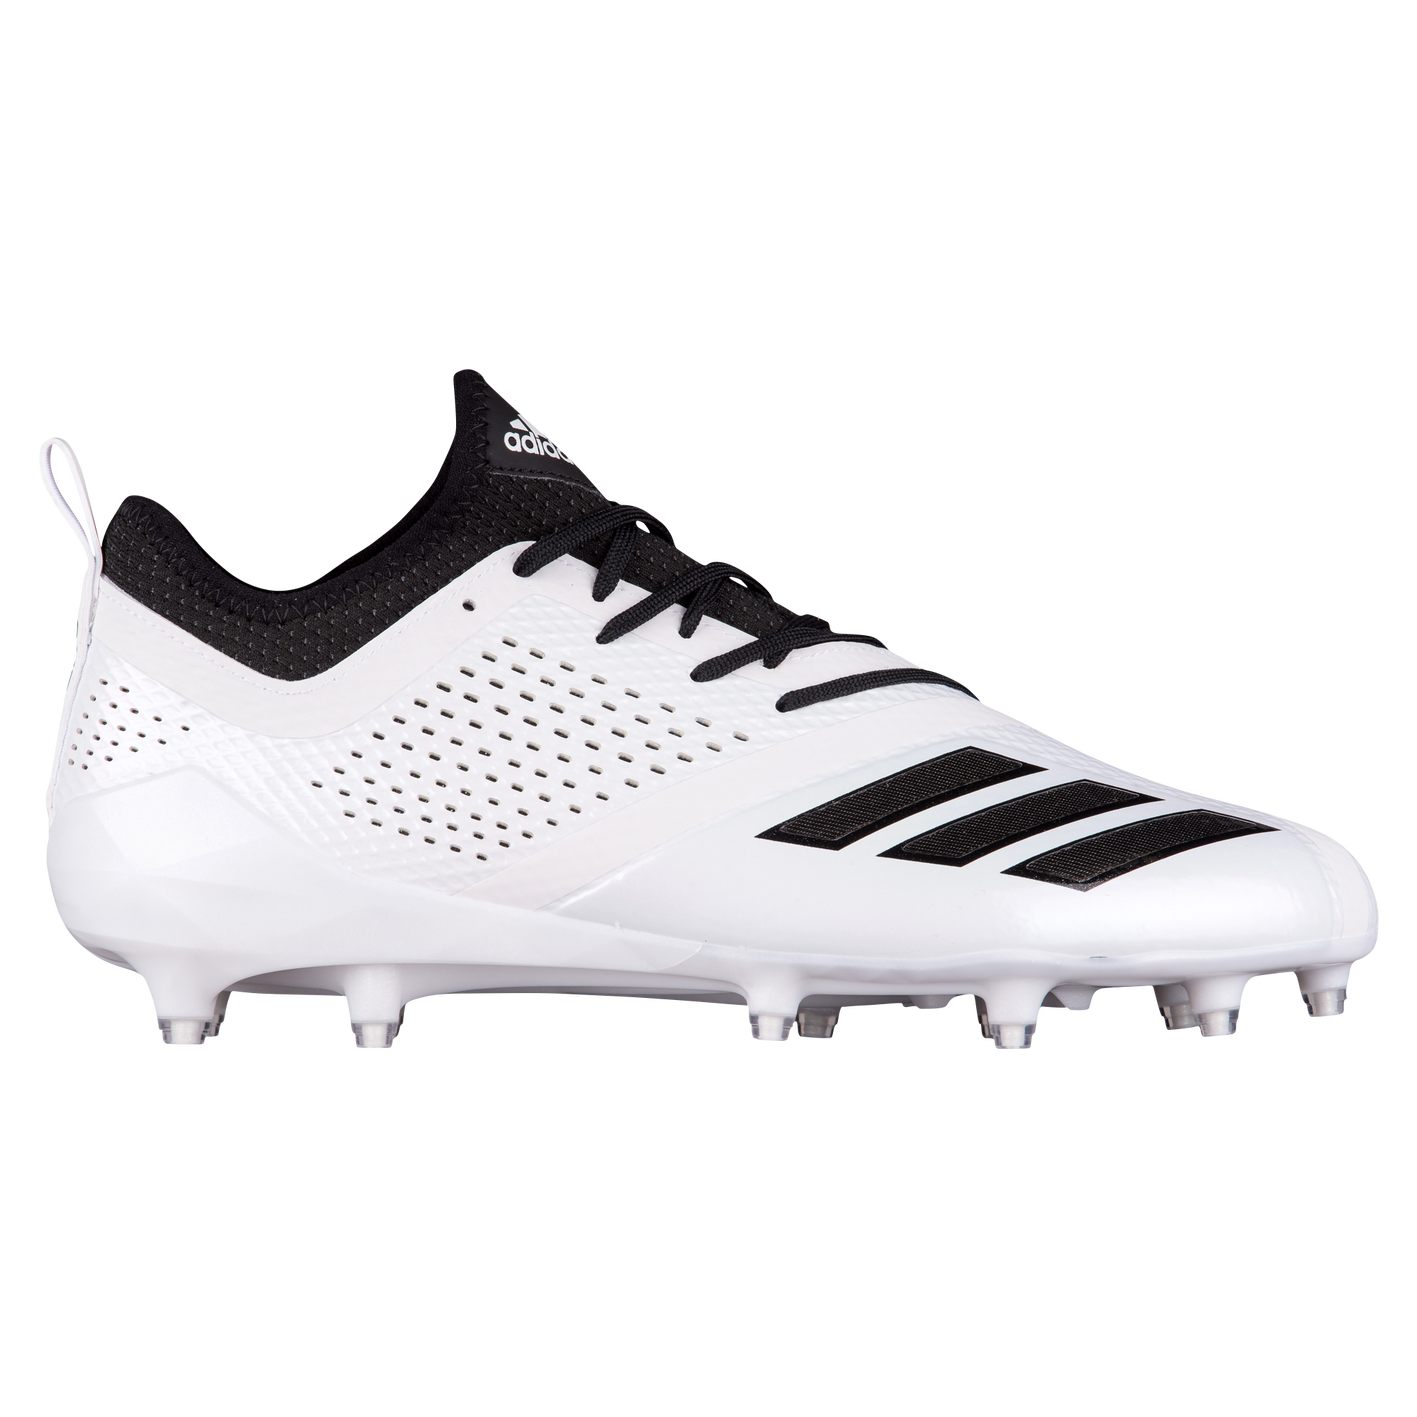 843a30813227 adidas adiZero 5-Star 7.0 - Men's - Football - Shoes - White/Black/Black